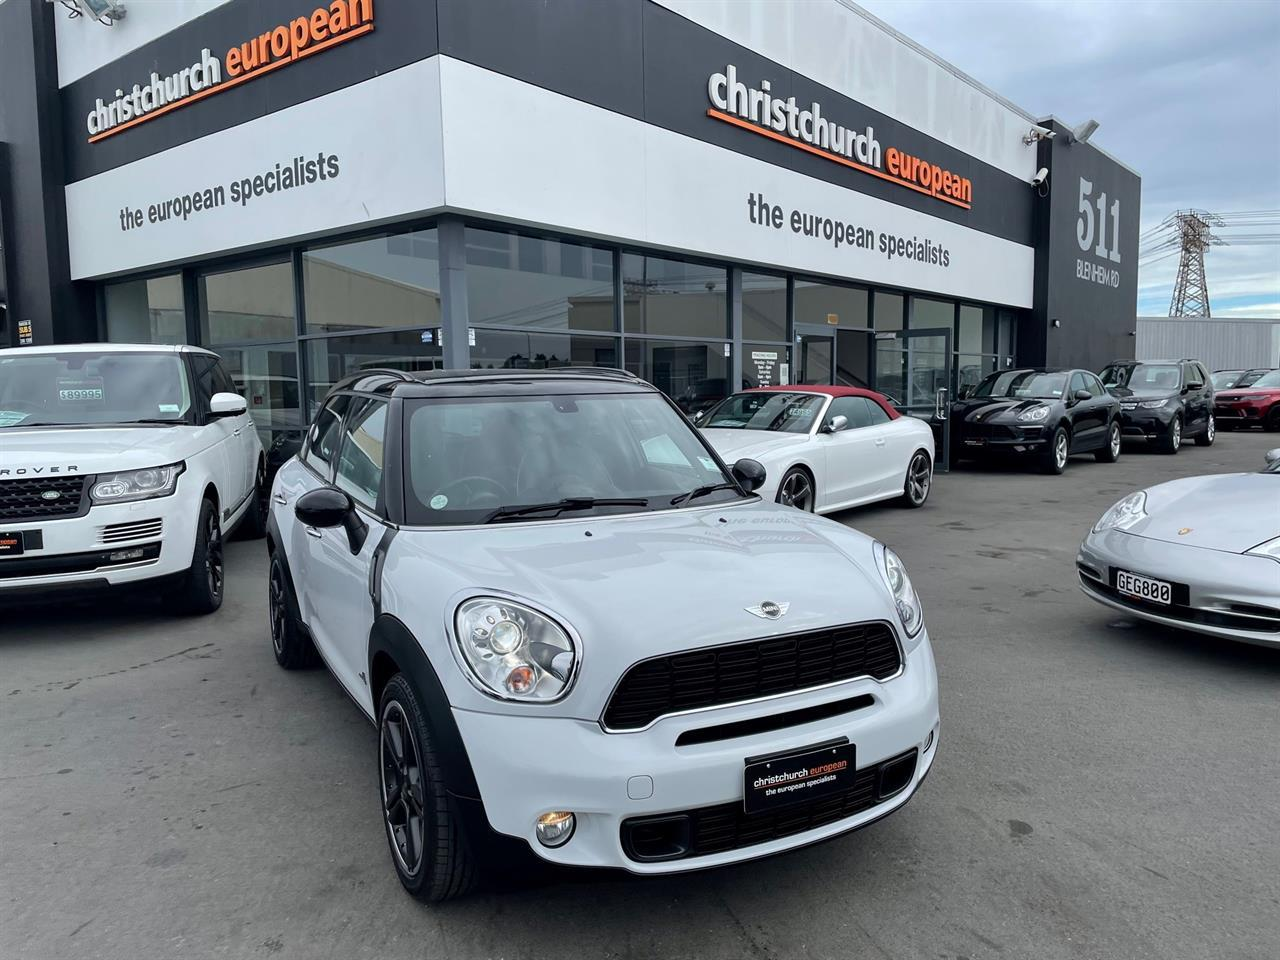 image-1, 2011 Mini Cooper S ALL4 AWD Crossover at Christchurch